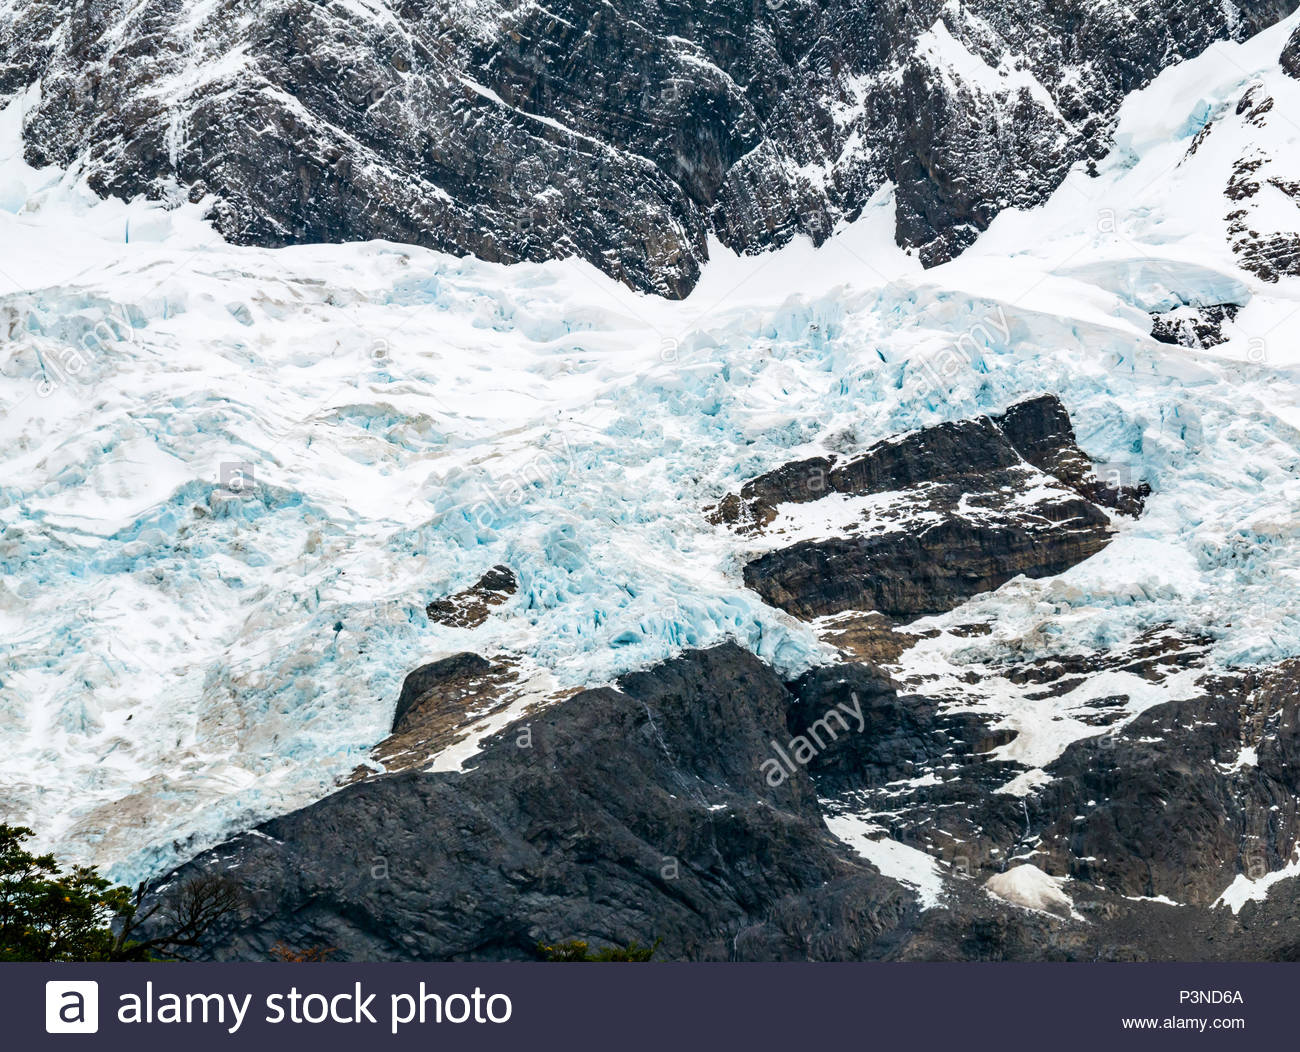 Zoomed view of crevices of blue glacier ice in French Valley, Torres del Paine National Park, Patagonia, Chile, South America Stock Photo